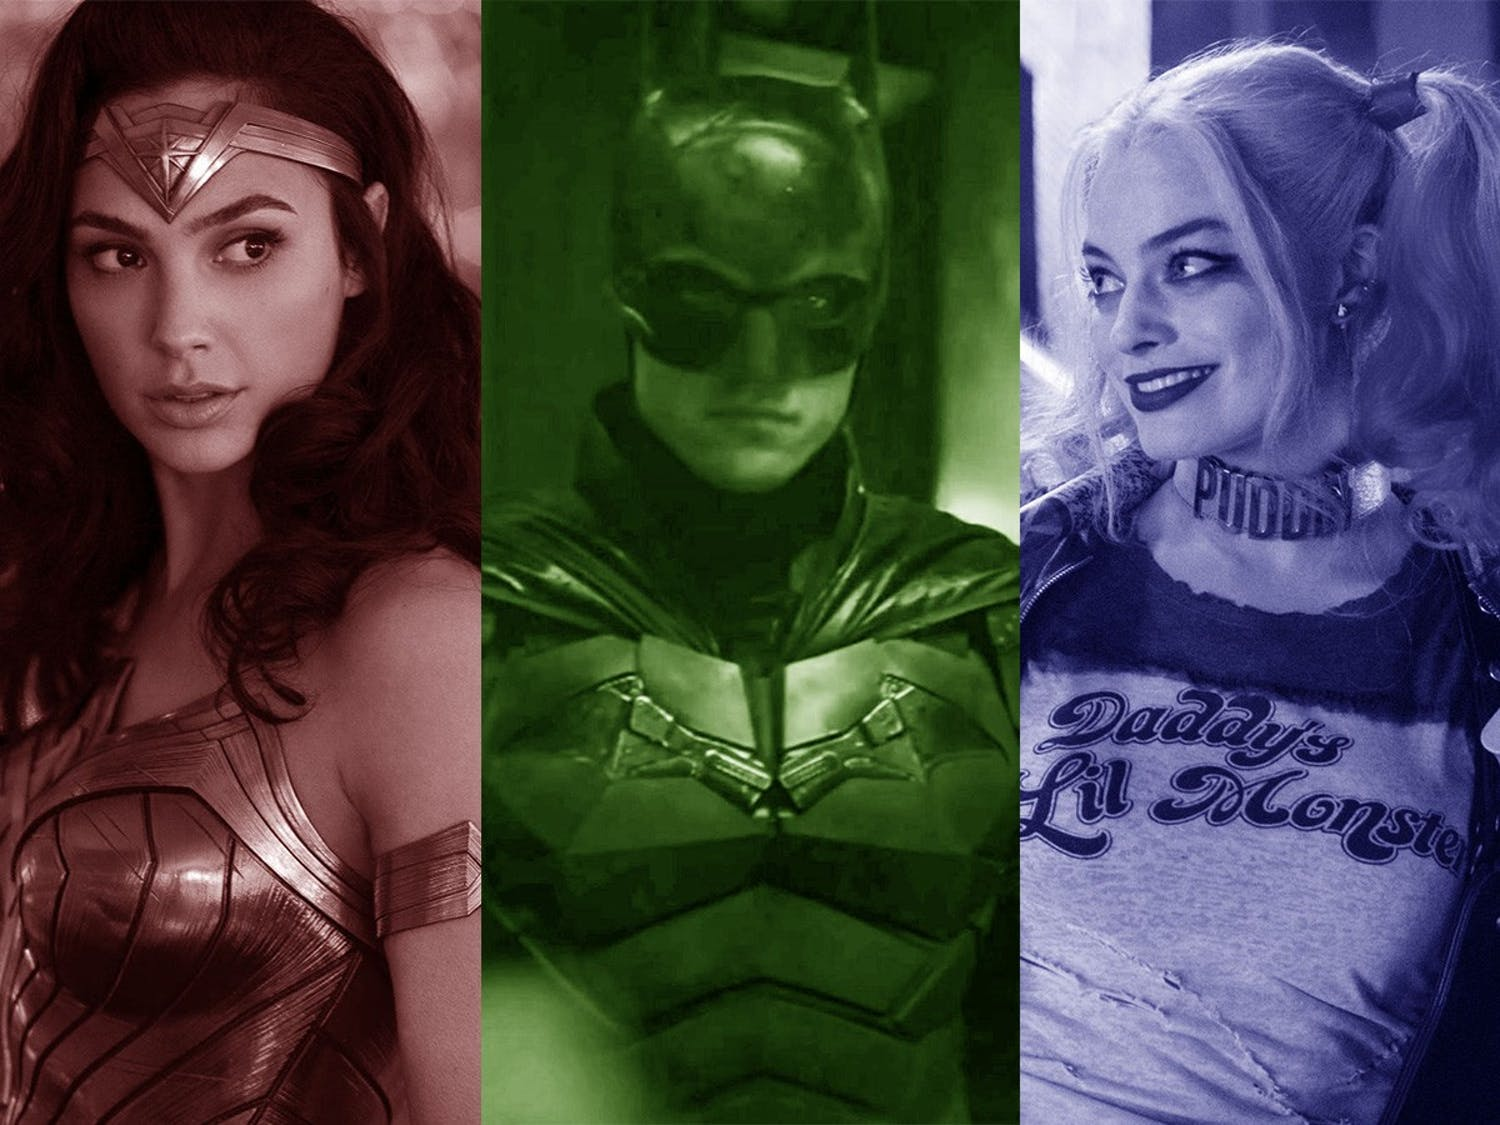 DC Fandome is a convention that presents fans with all new information on its coveted DC franchise.